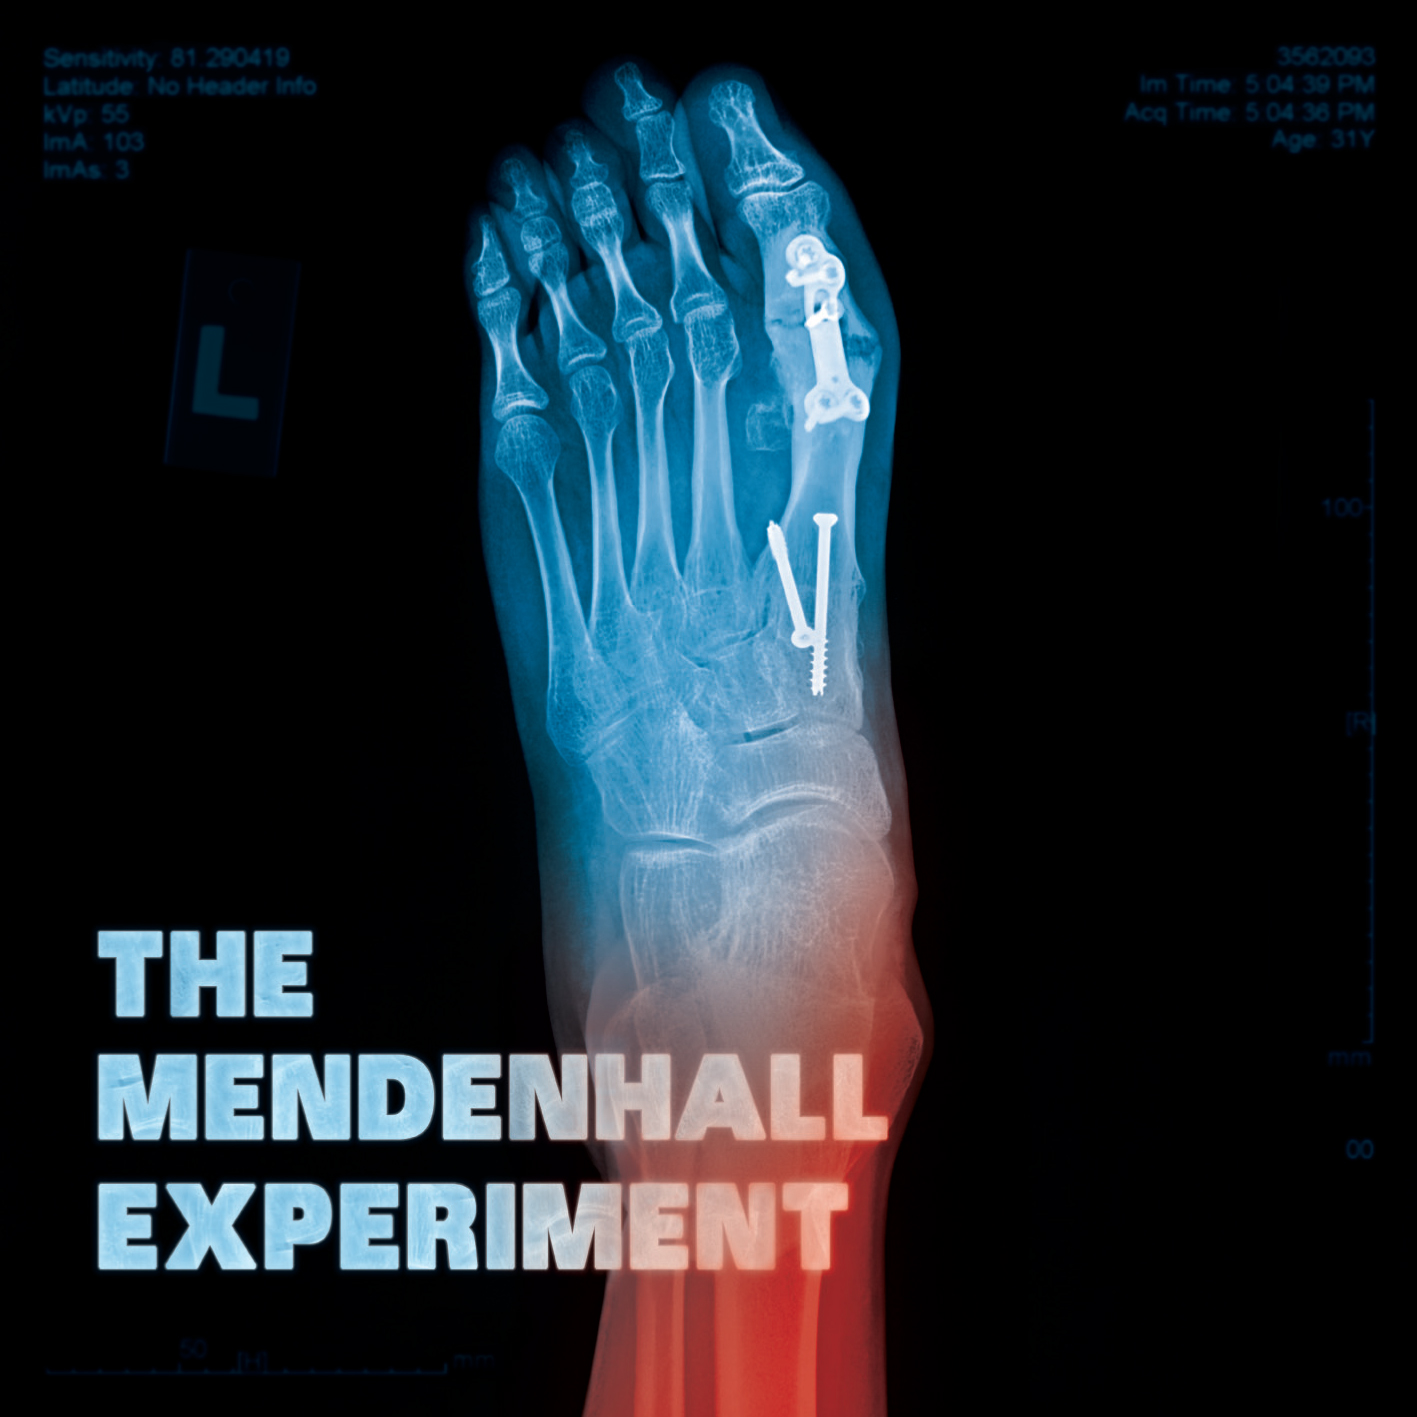 The Mendenhall Experiment